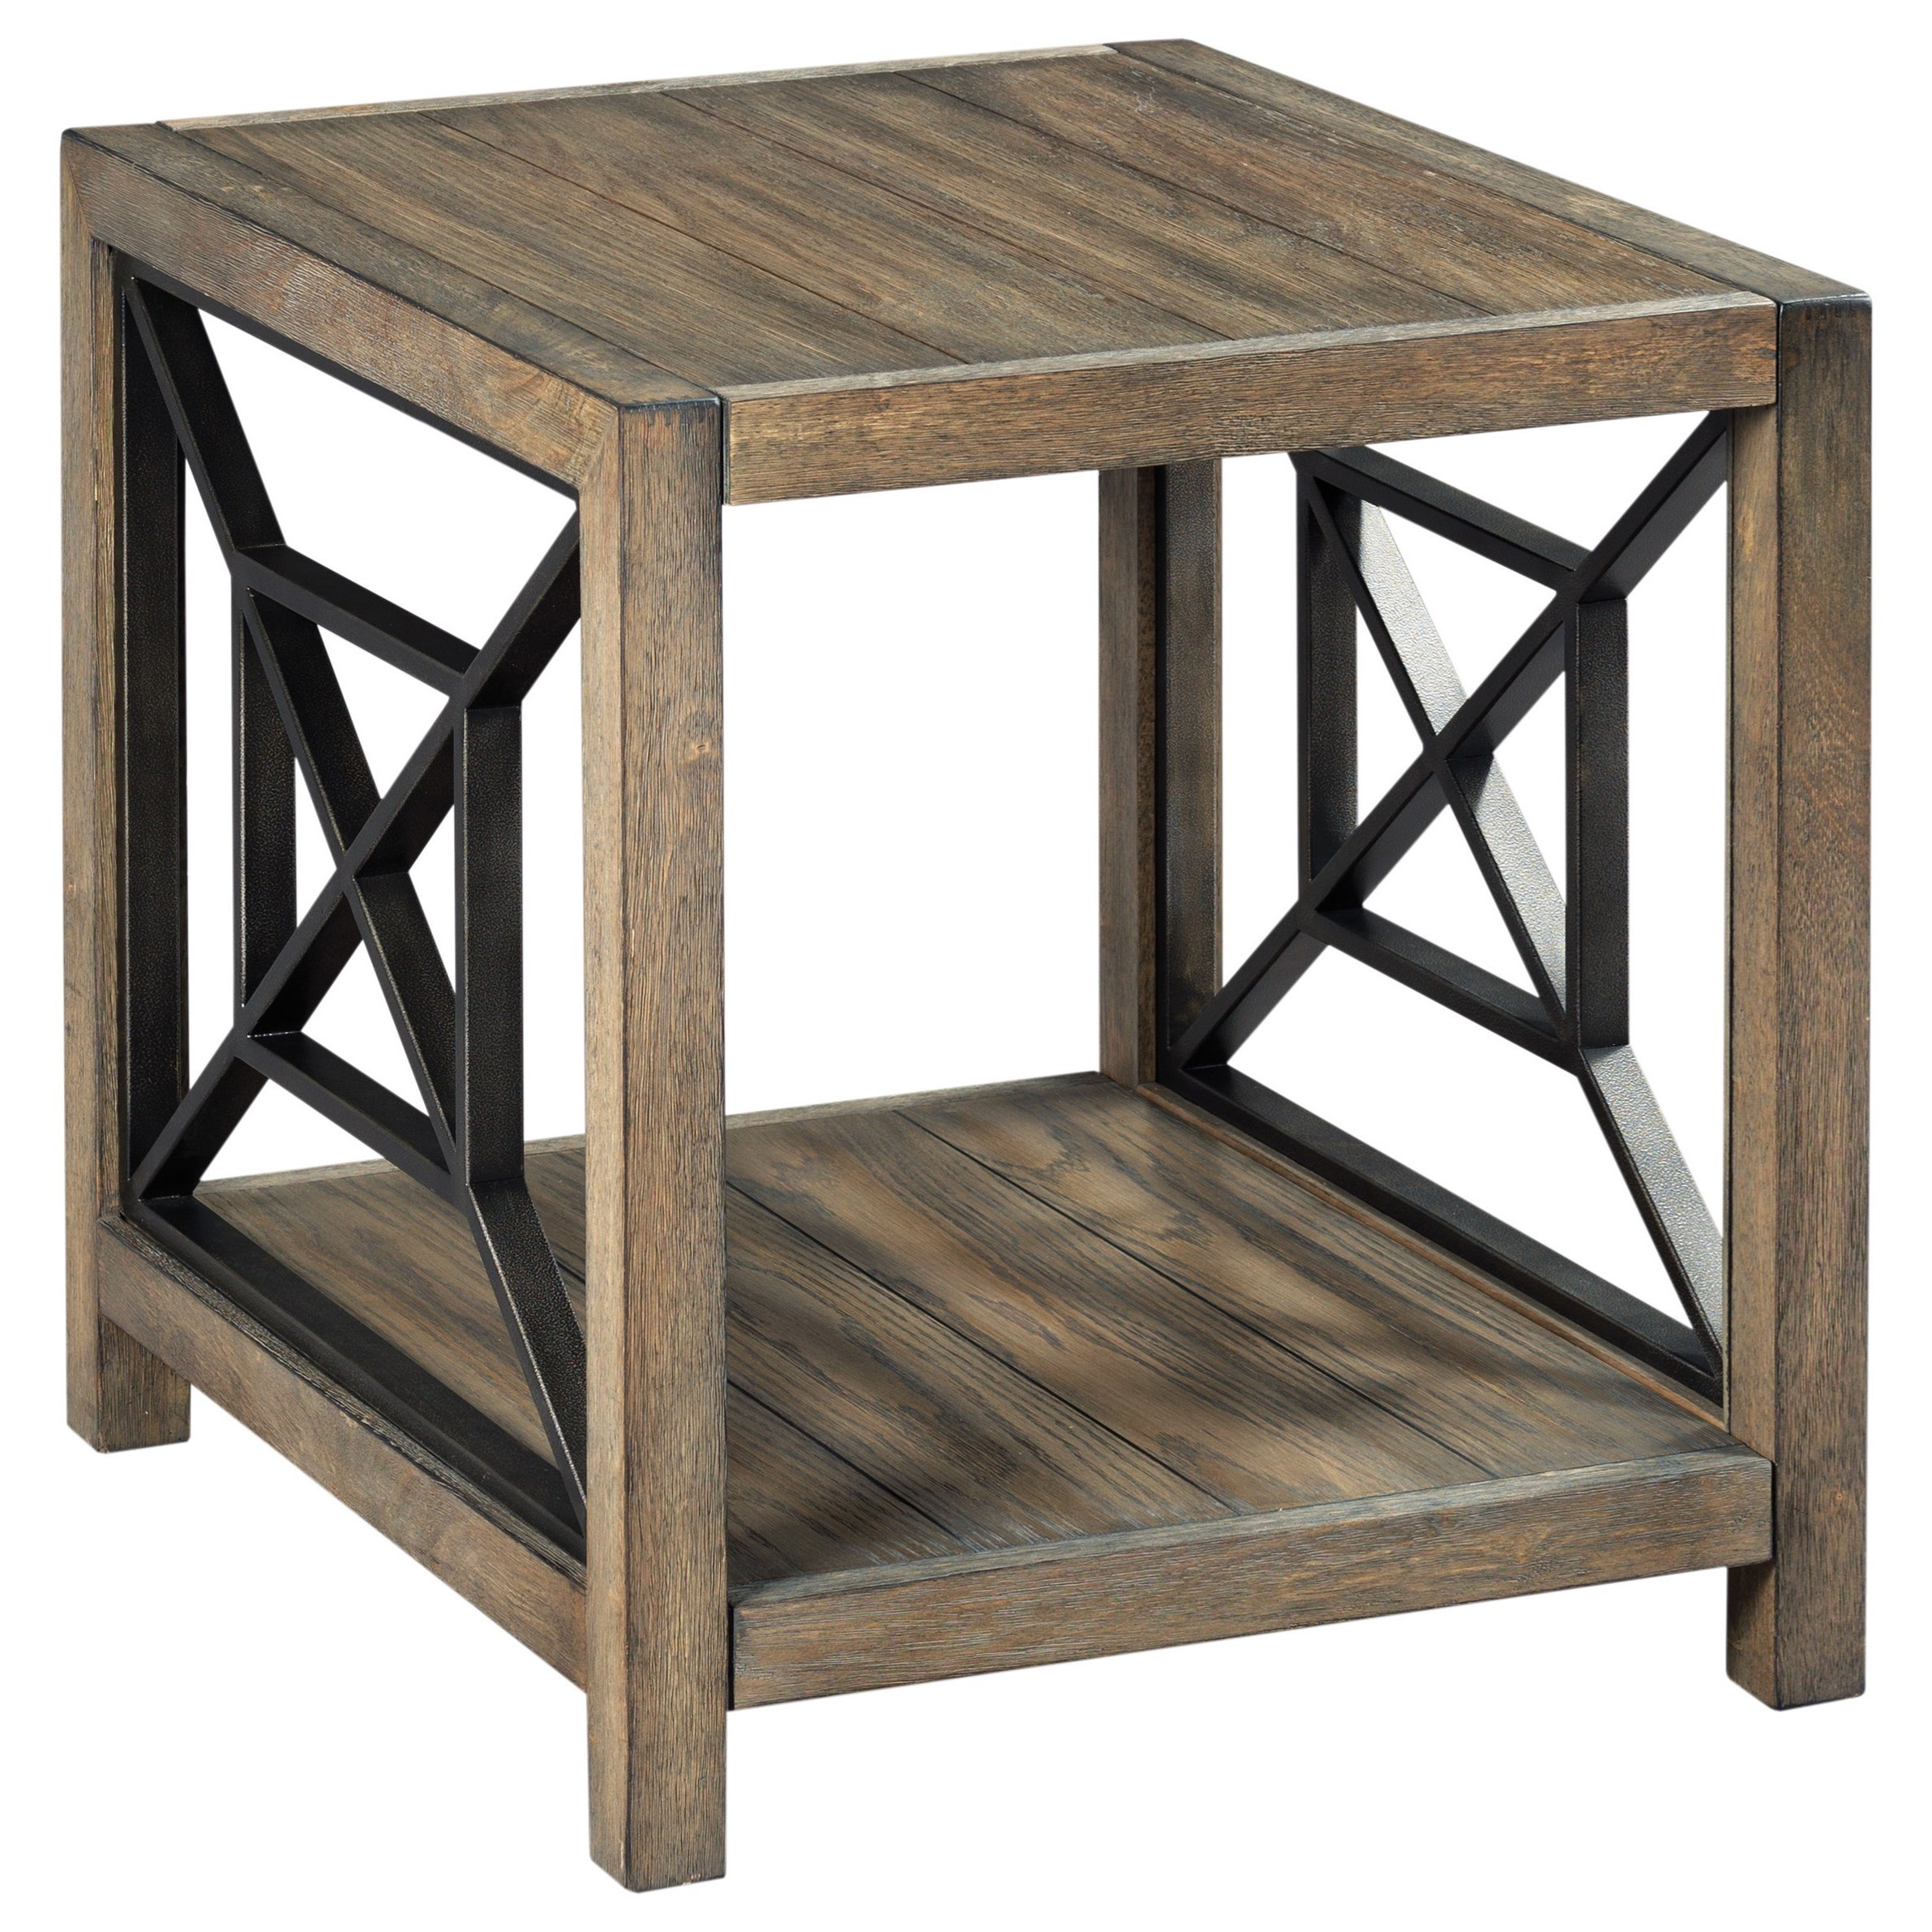 Synthesis Rectangular End Table by Alexvale at Northeast Factory Direct